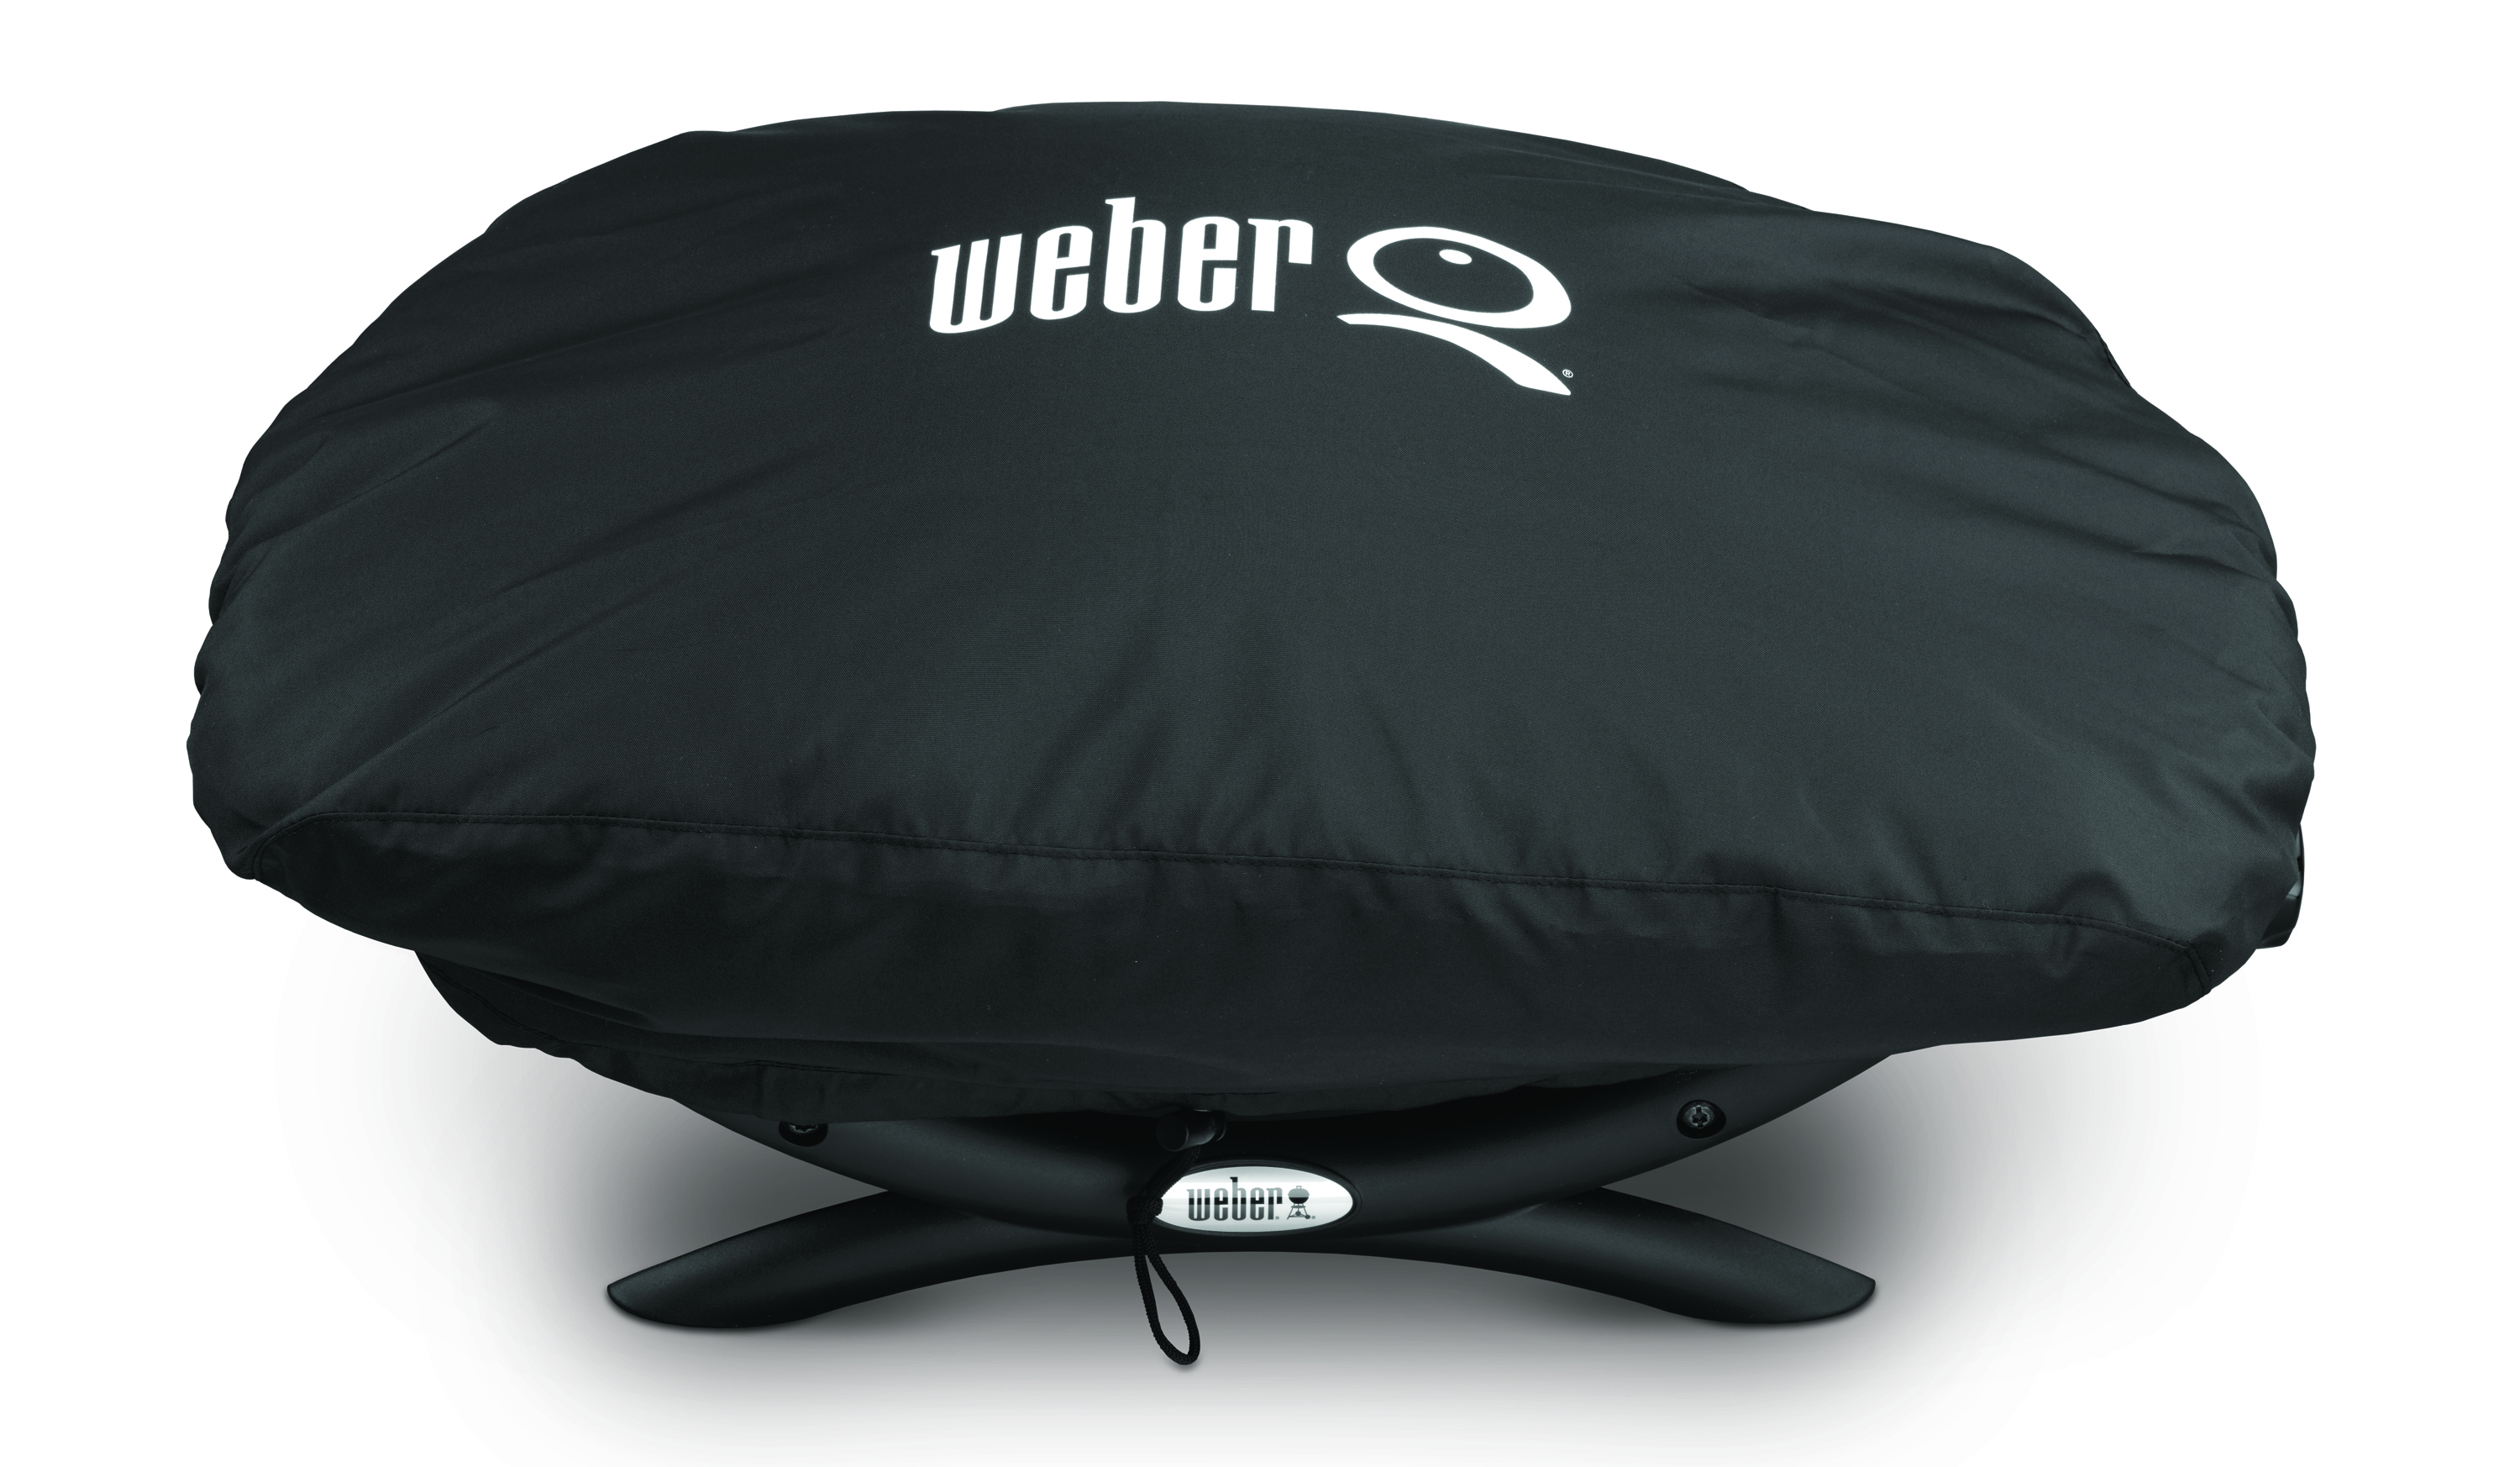 weber abdeckhaube standard weber q zubeh r gasgrill zubeh r weber weber grills. Black Bedroom Furniture Sets. Home Design Ideas